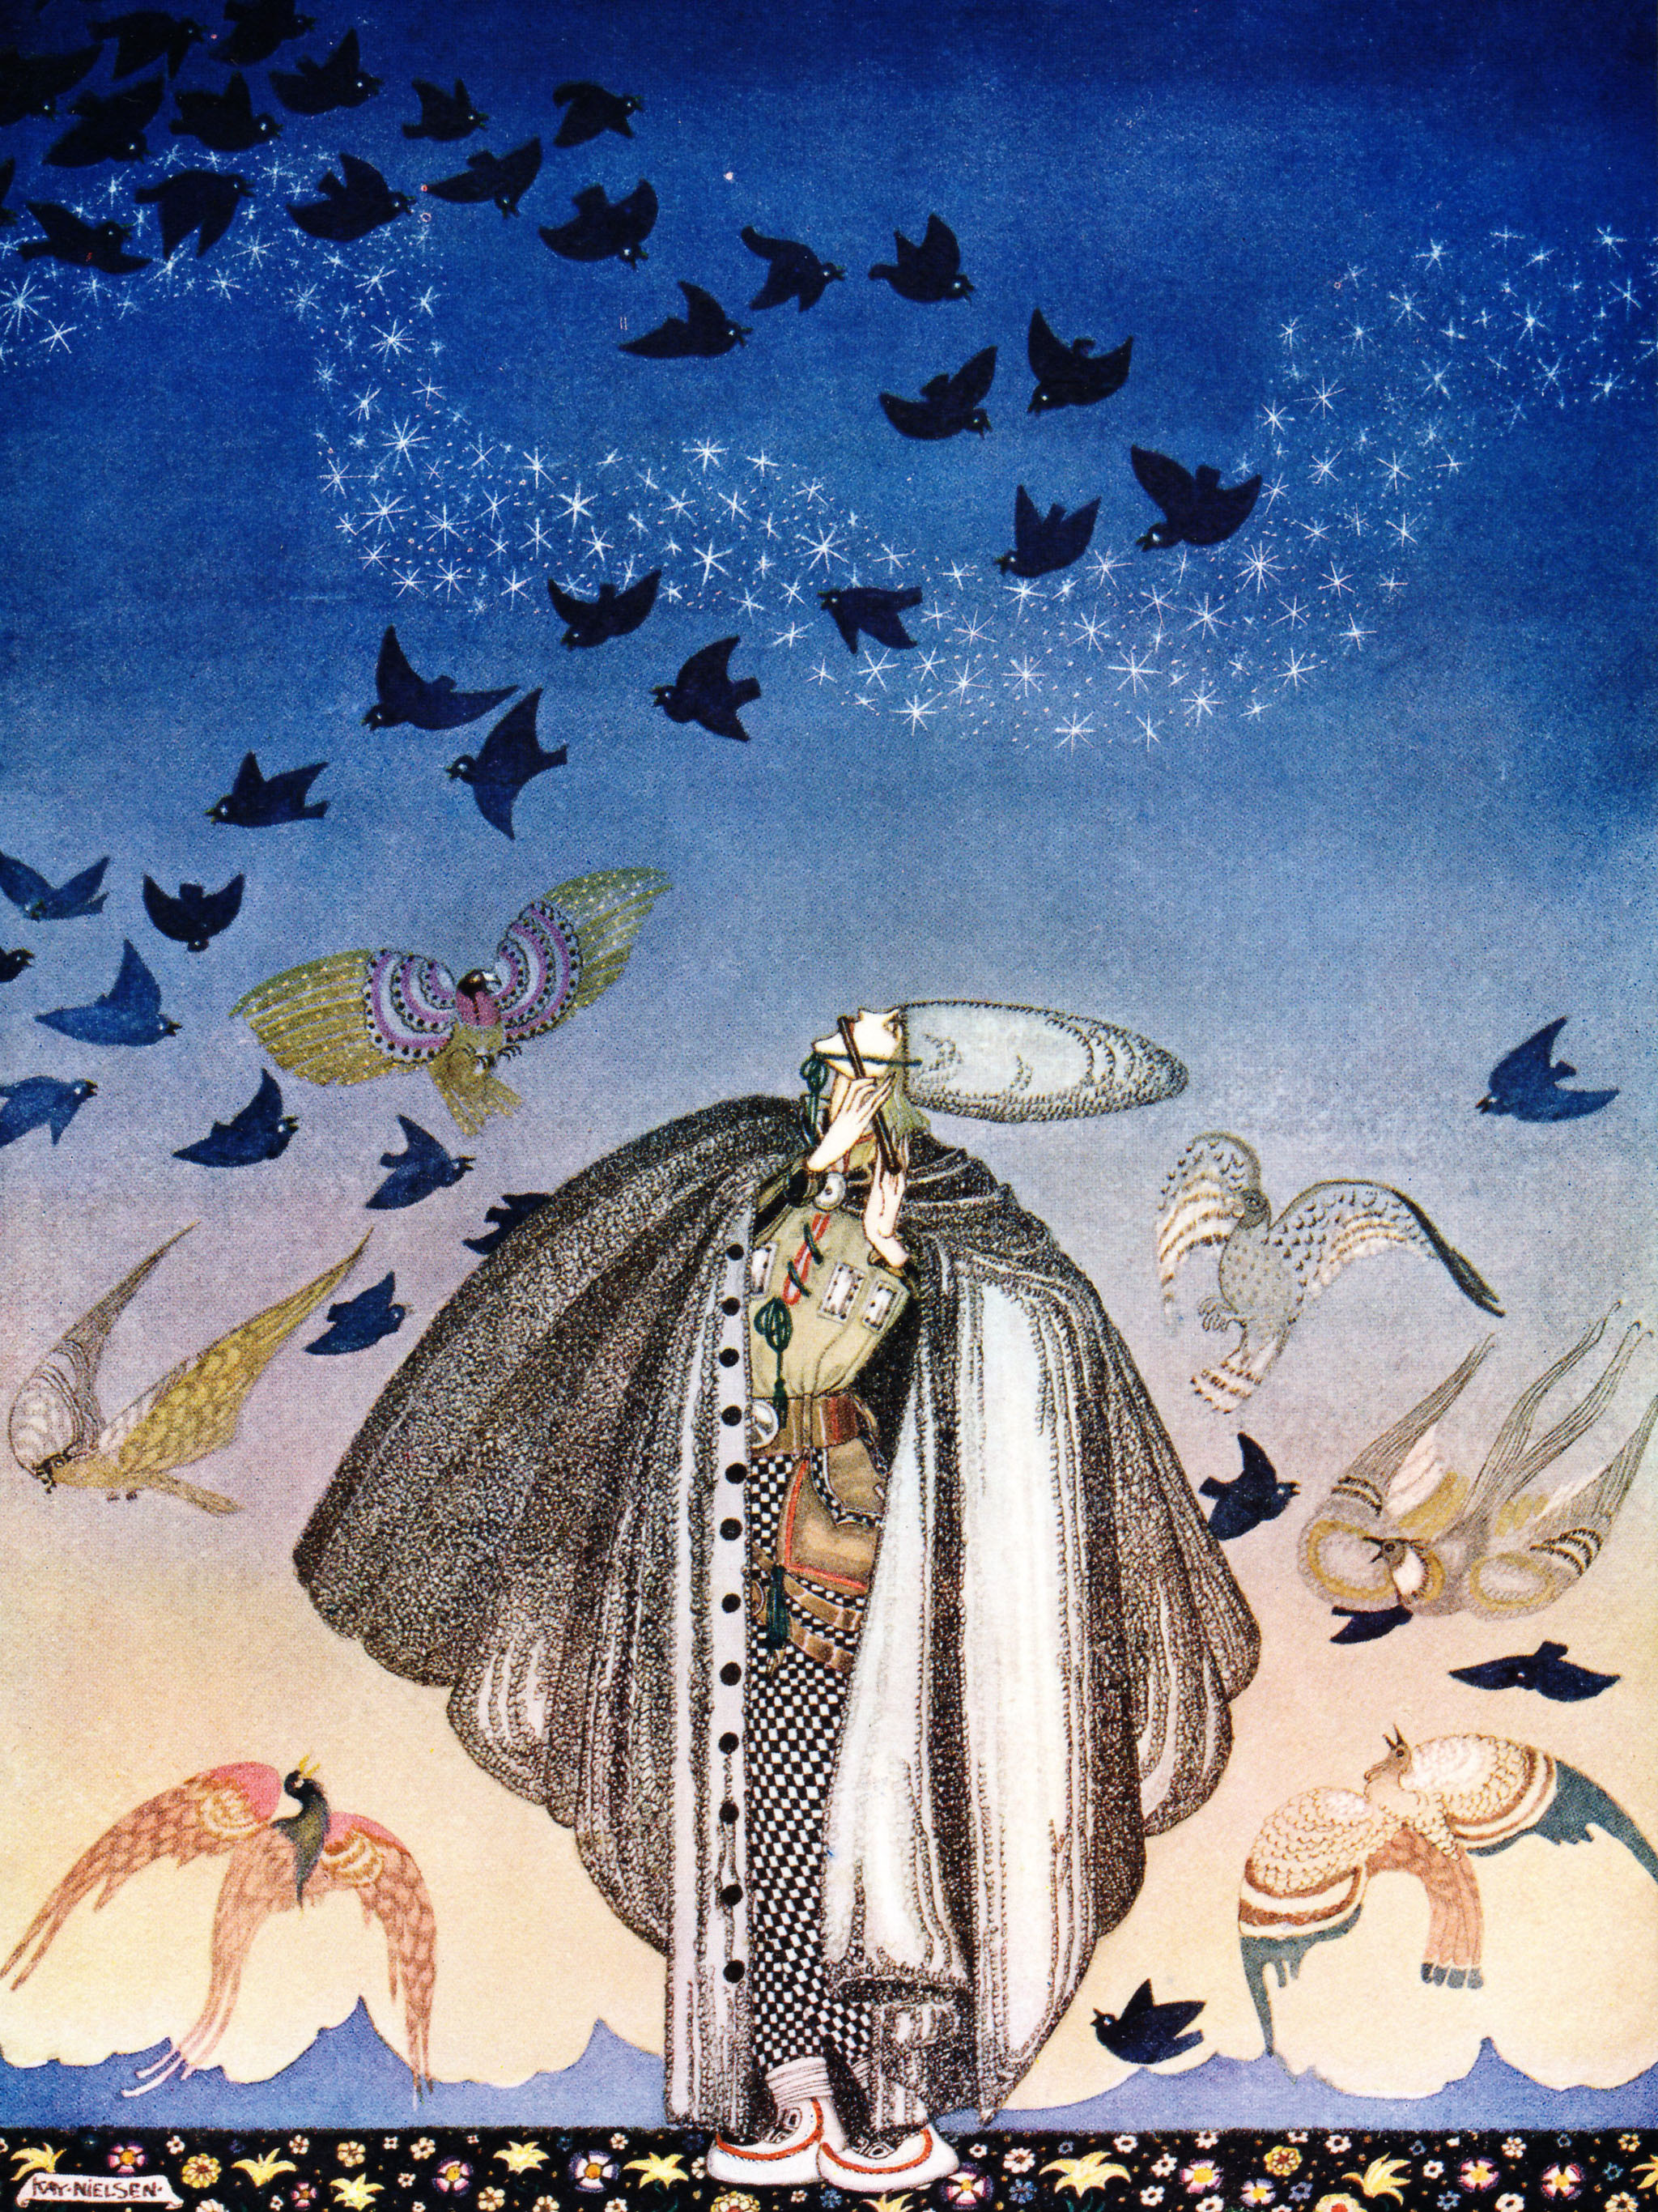 カイ・ニールセン Kay Nielsen - No sooner had he whistled than 2048x2732